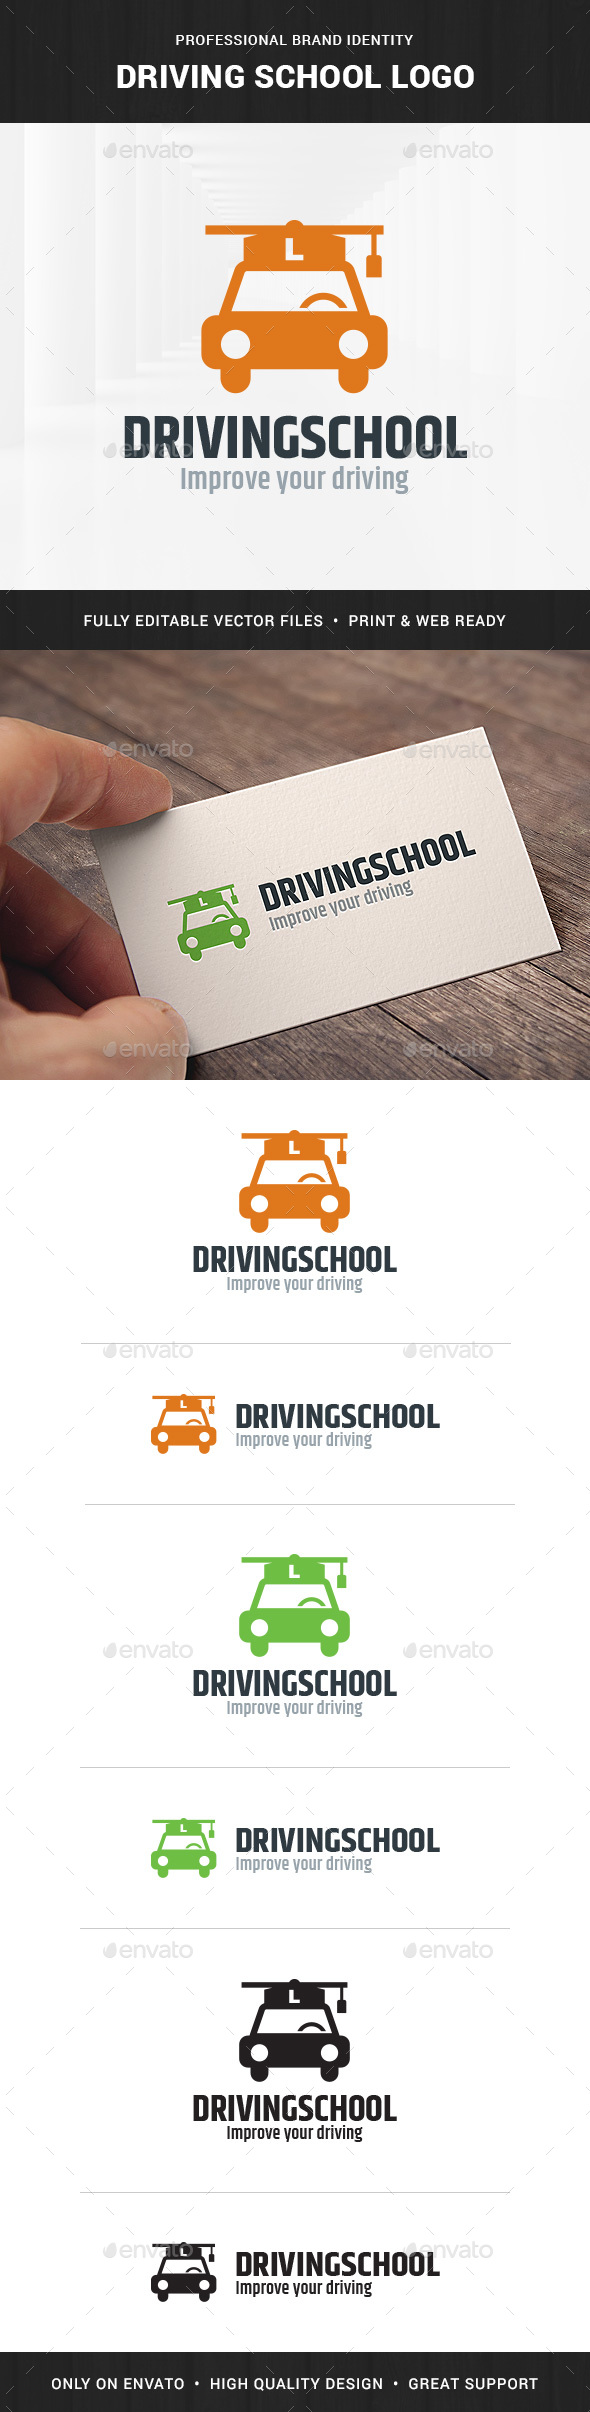 Driving School Logo Template by LiveAtTheBBQ | GraphicRiver